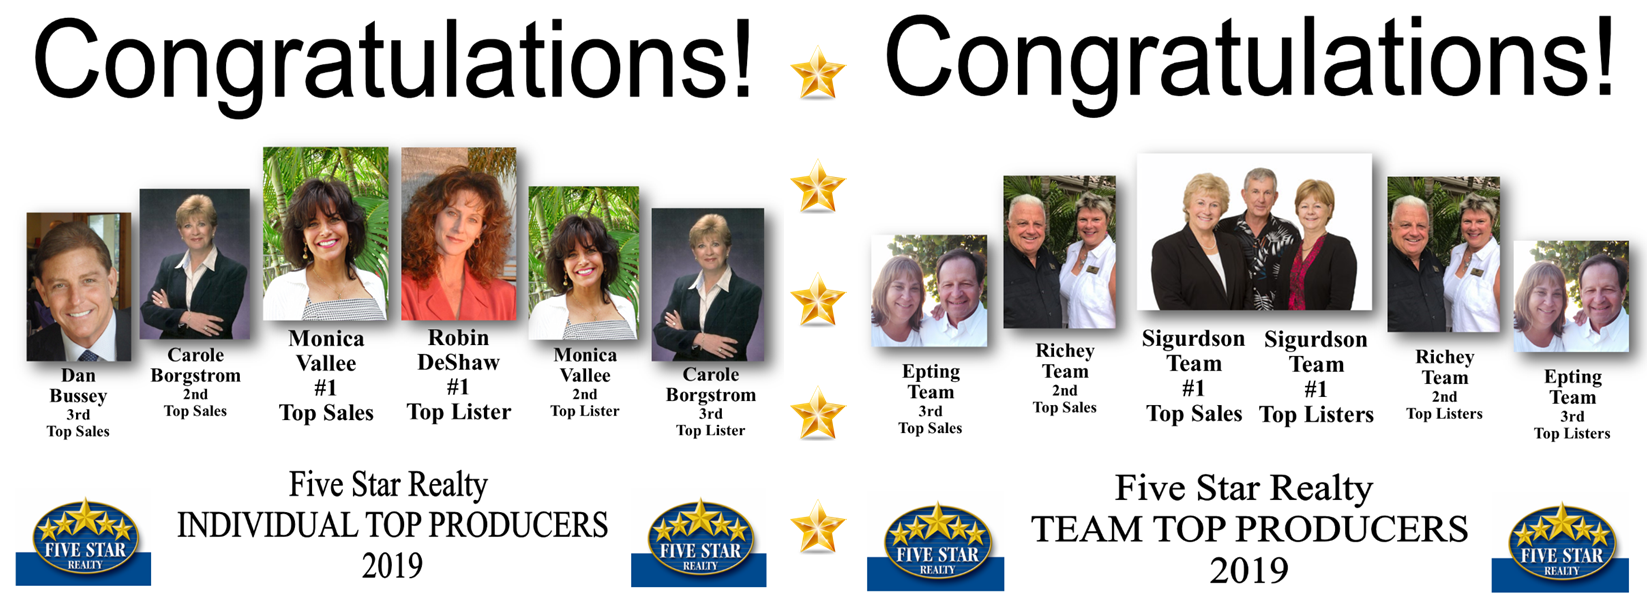 Congratulations To Our Five Star Realty Top Producers for 2019!!